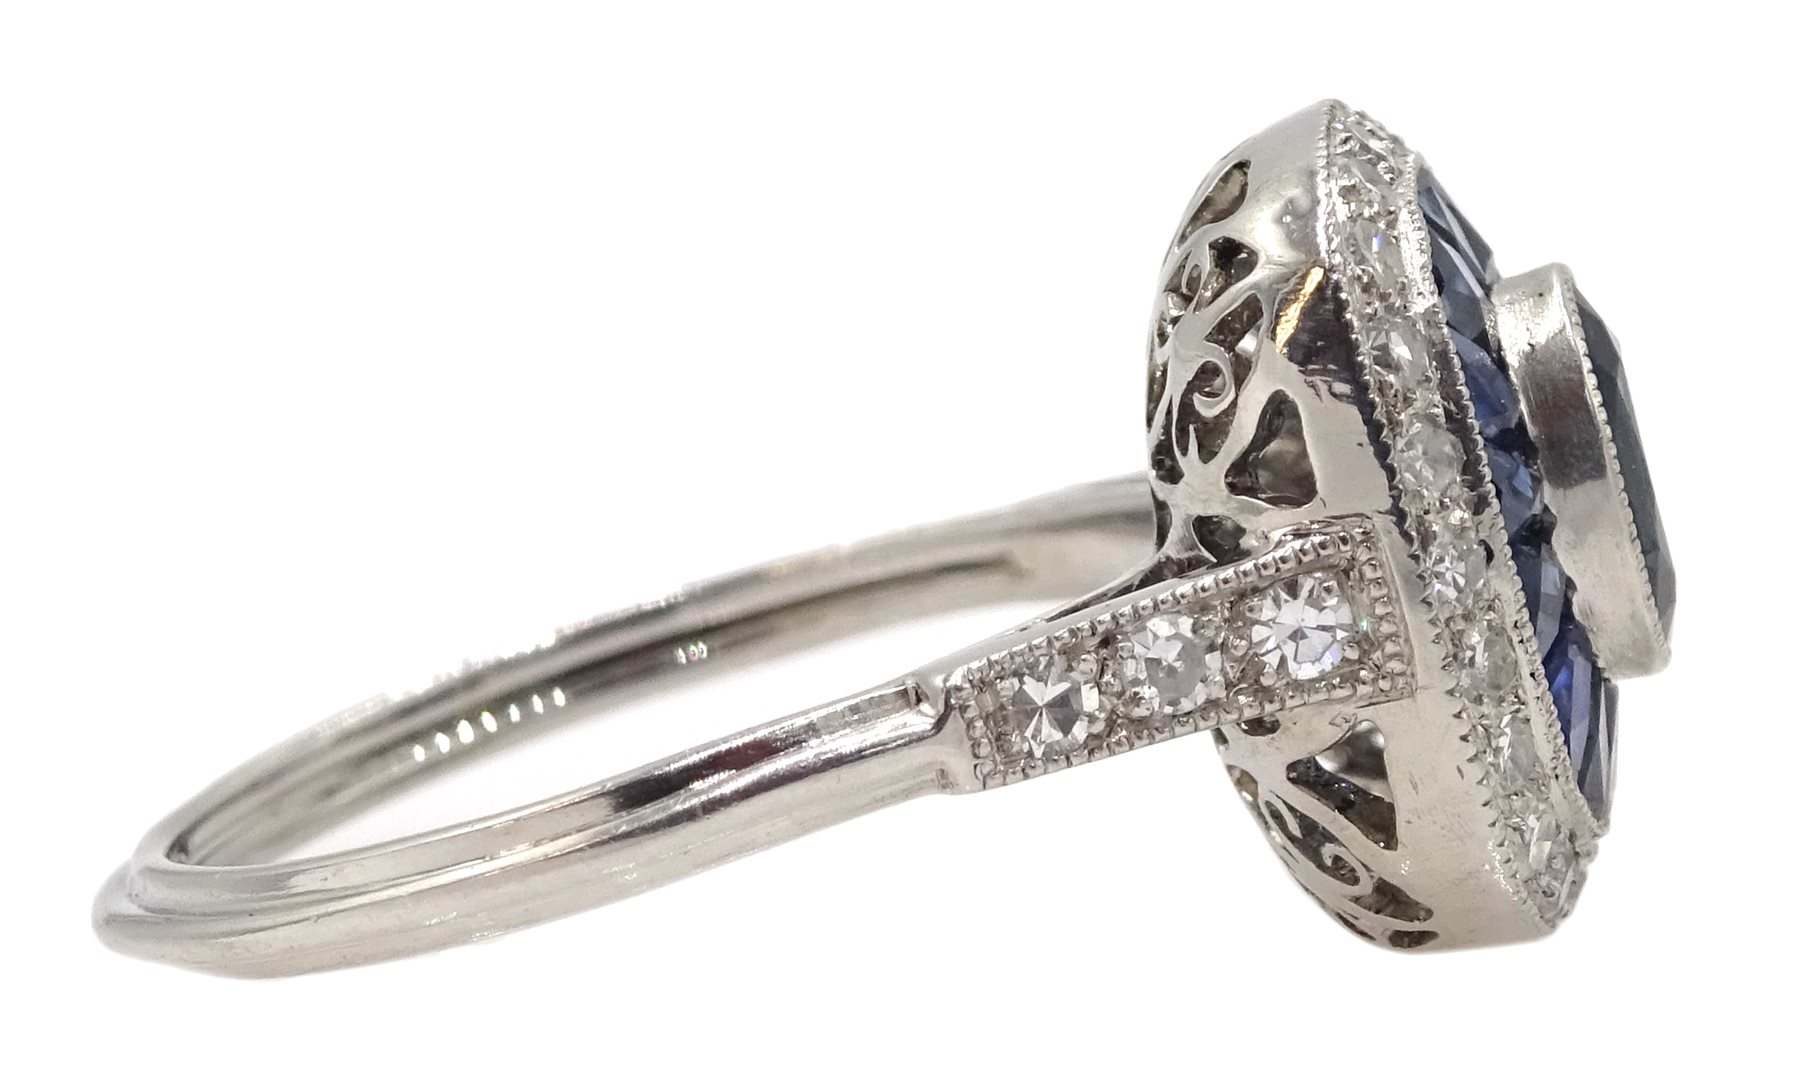 Platinum sapphire and diamond ring, the central oval sapphire surrounded by halo of calibre cut - Image 5 of 5